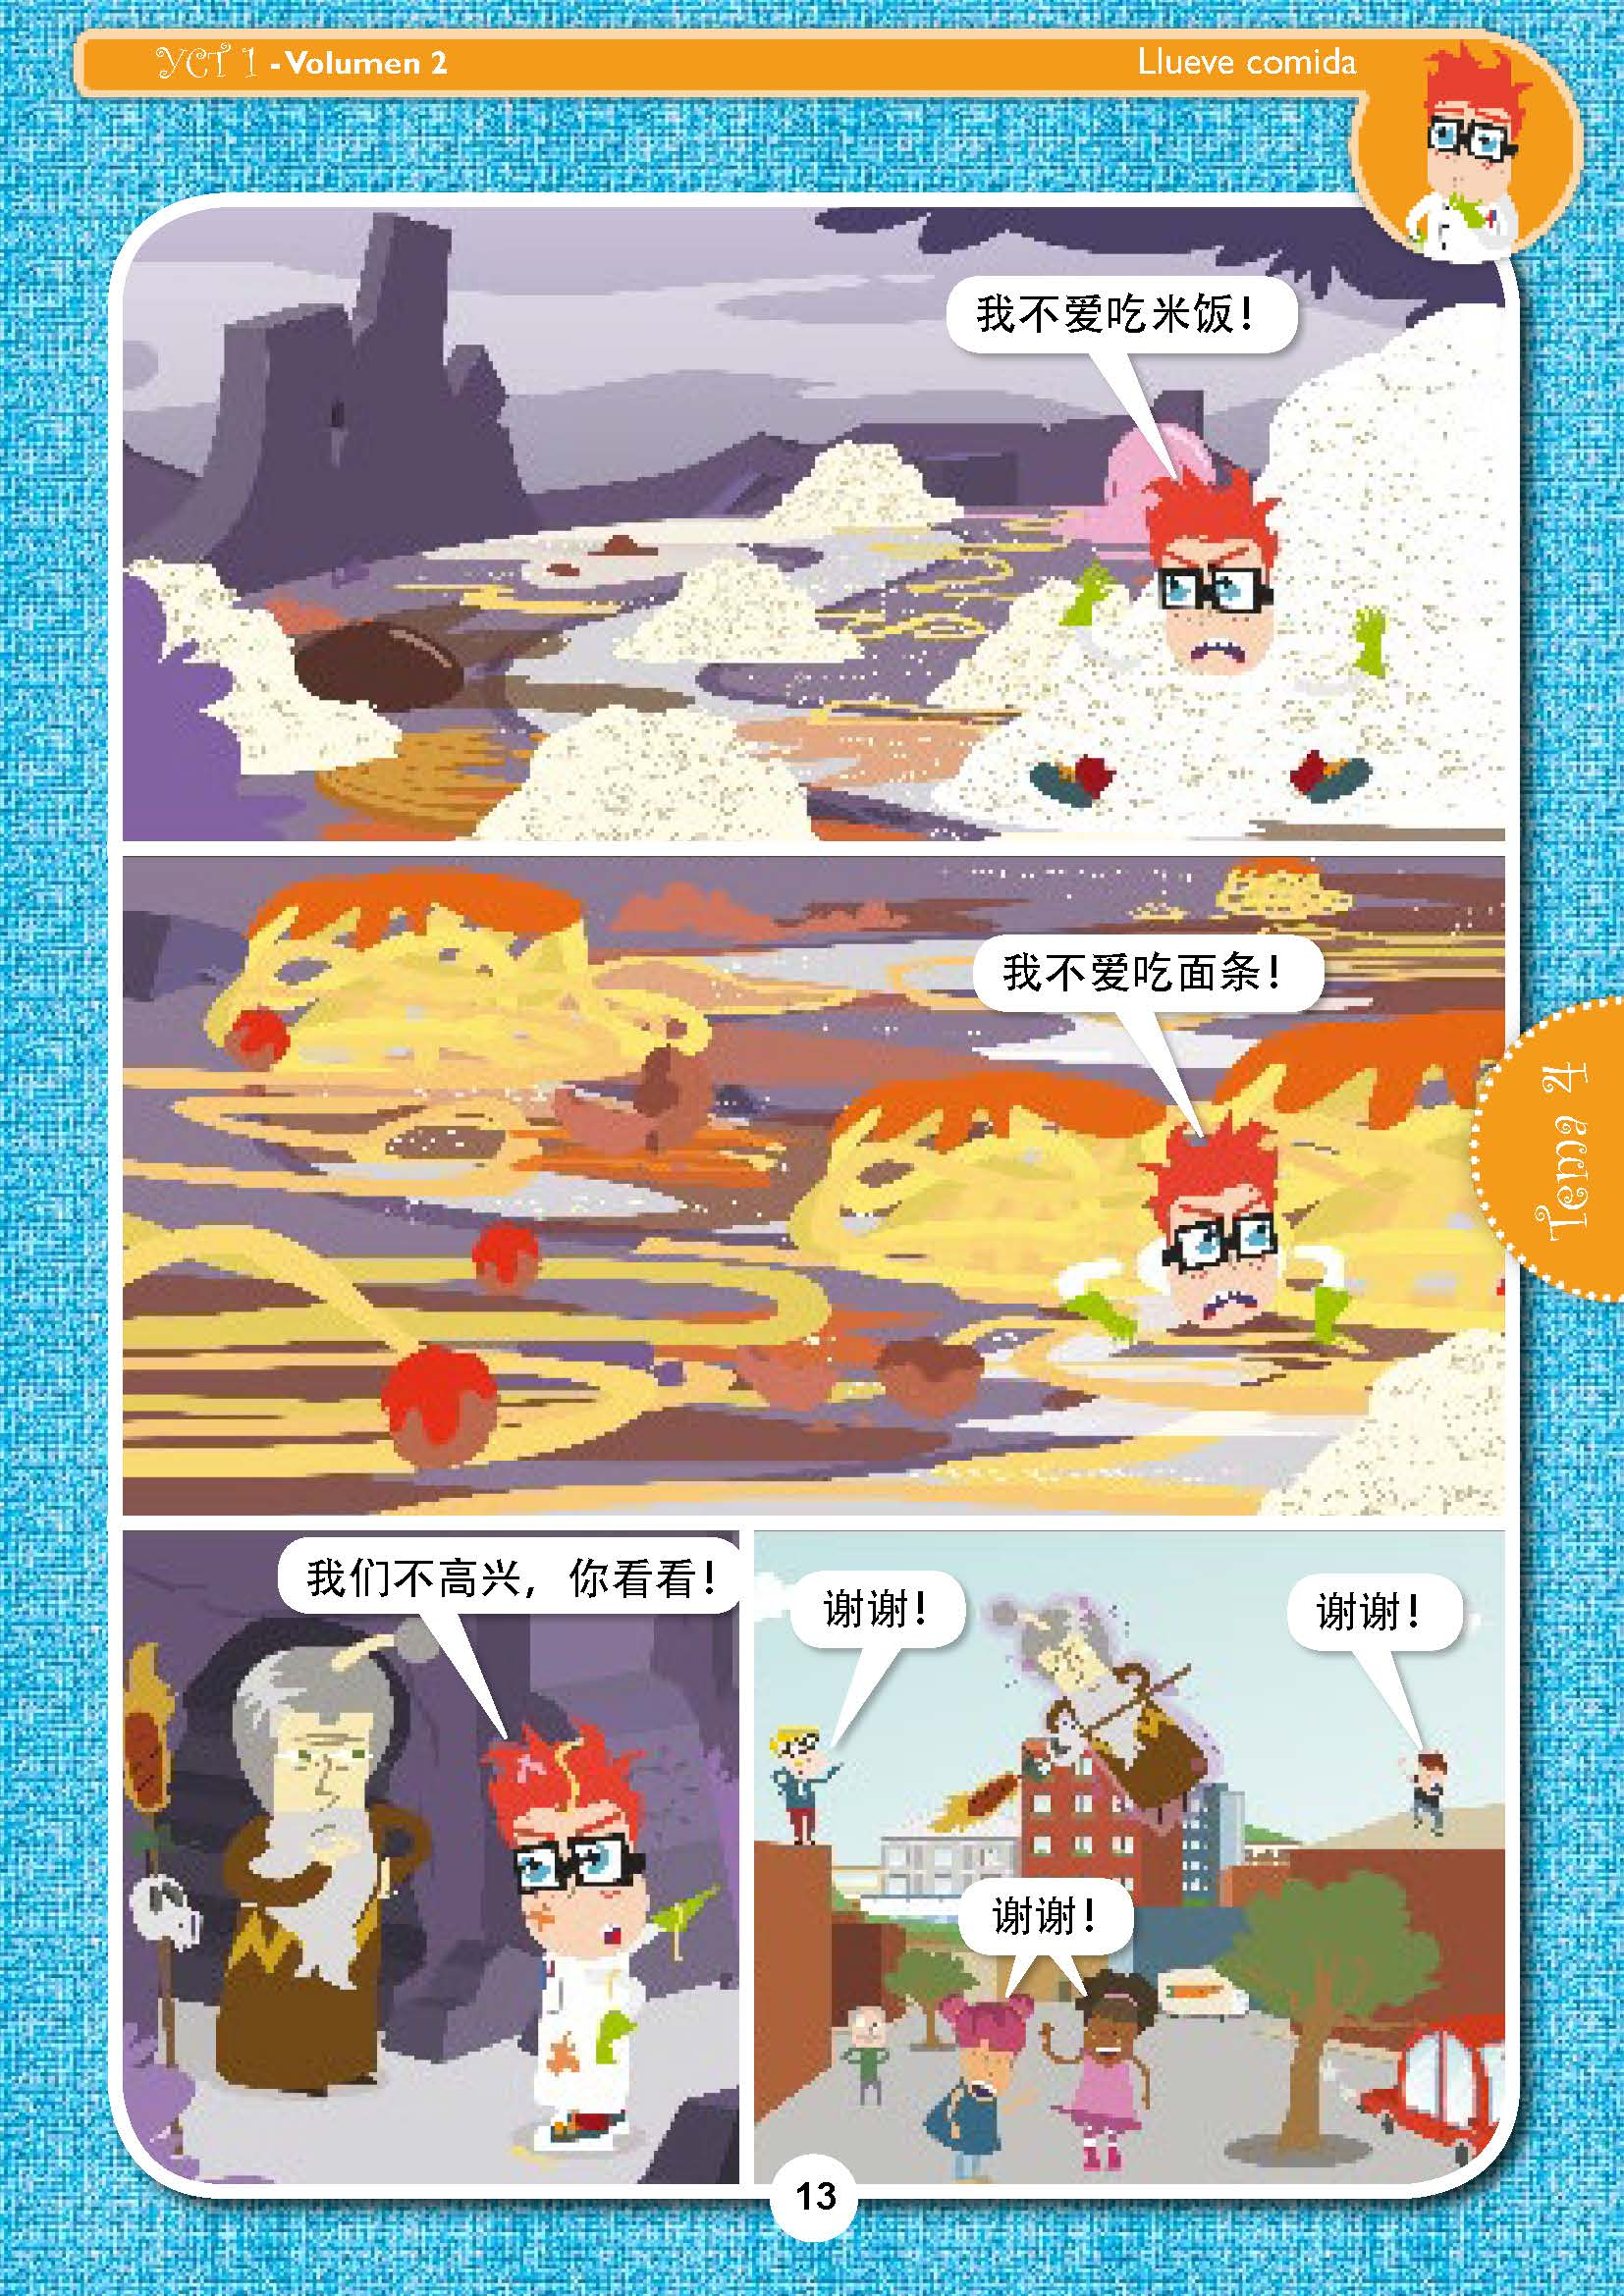 Chinese-Story__YCT1 Vol_2_Page_13